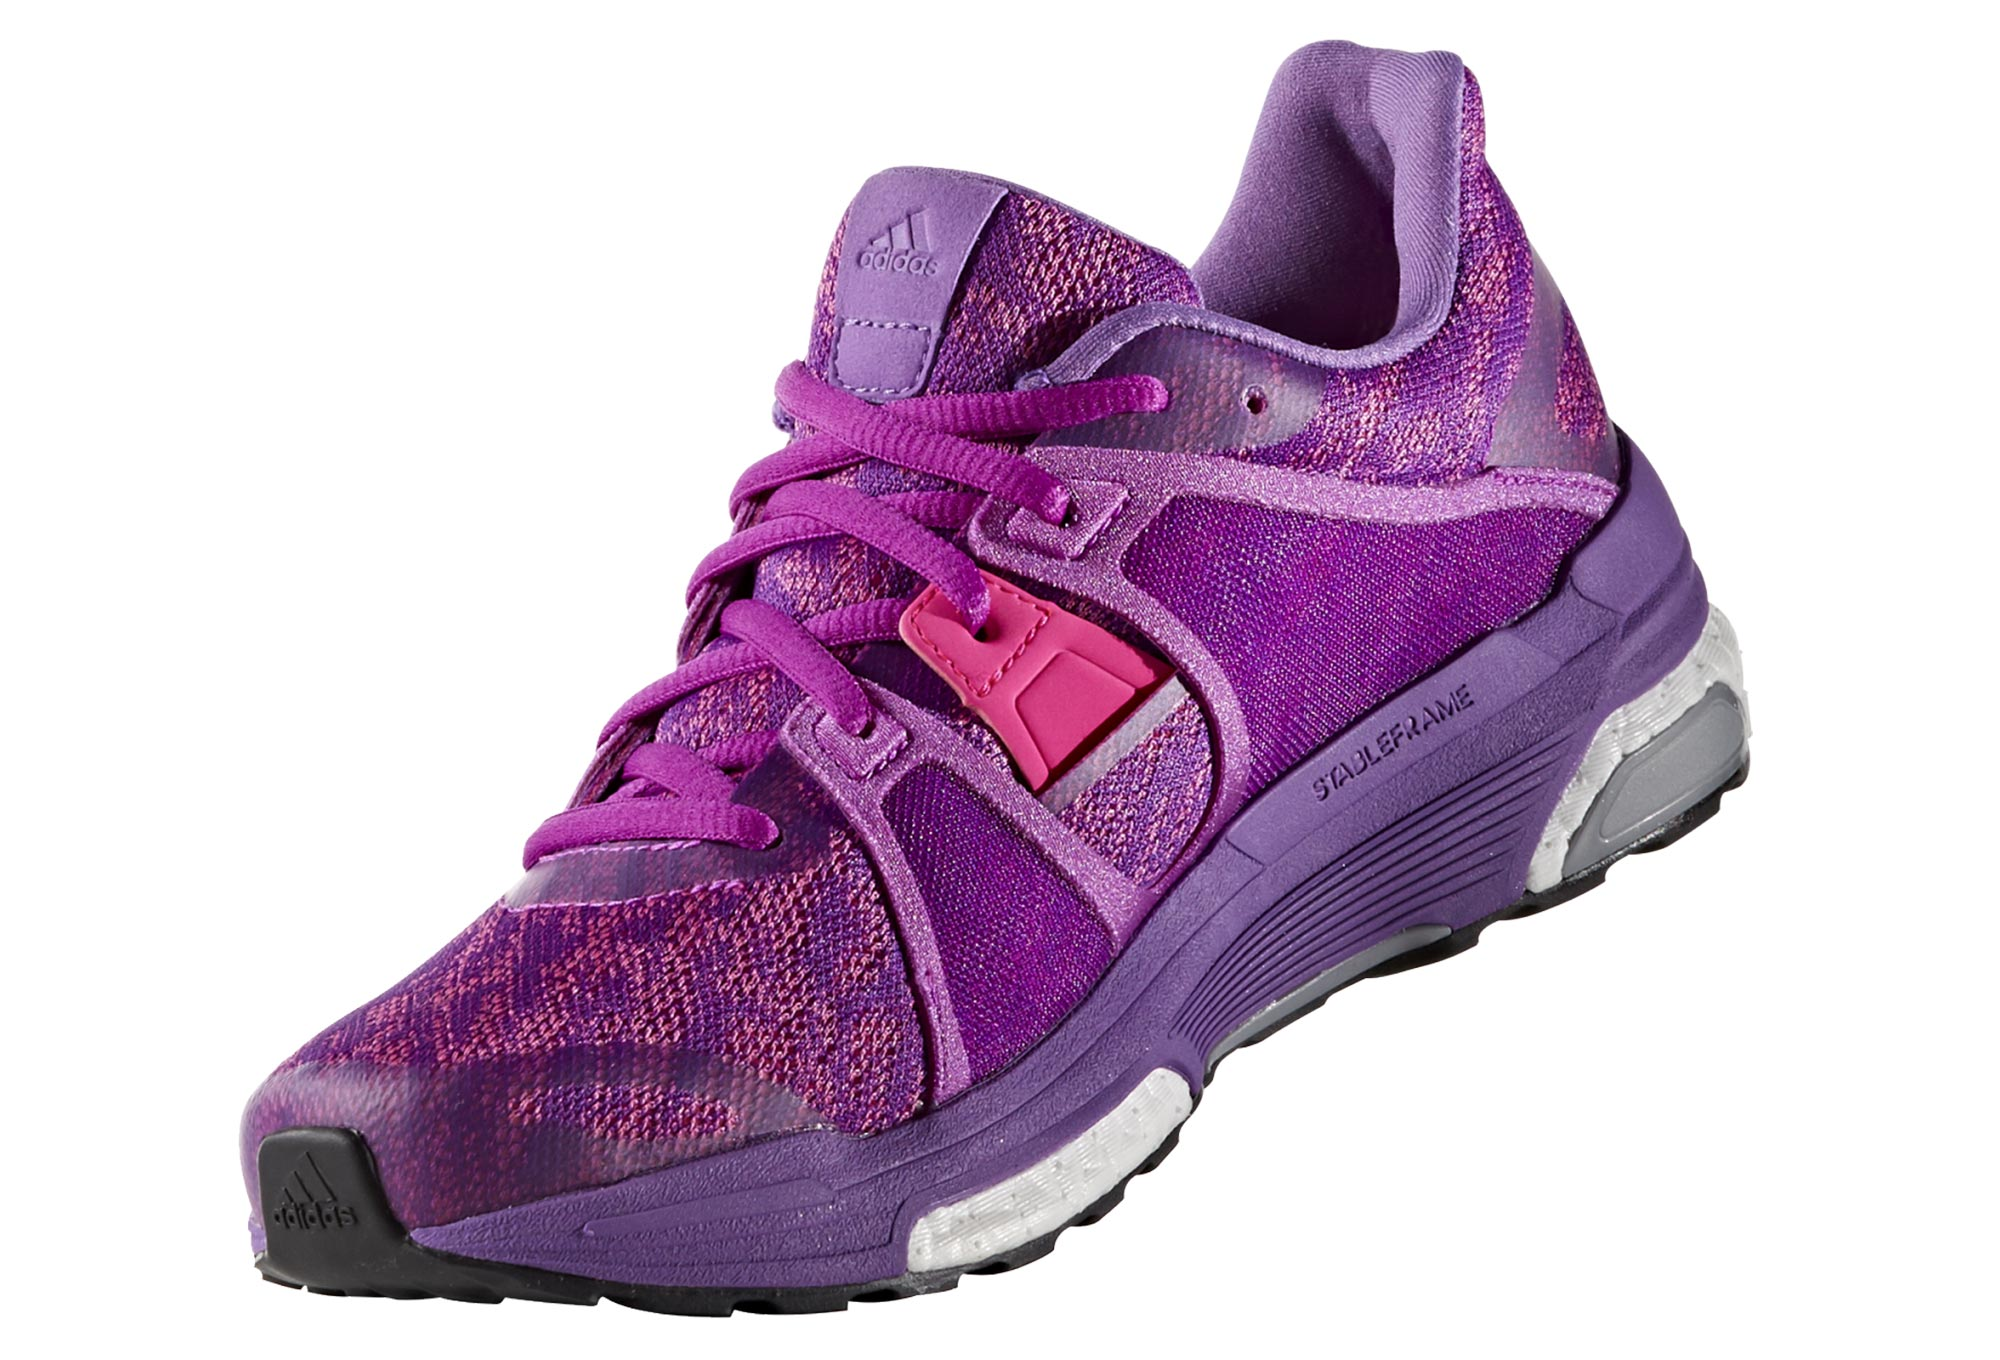 3680161a3 adidas SUPERNOVA SEQUENCE 9 Purple Pink Women